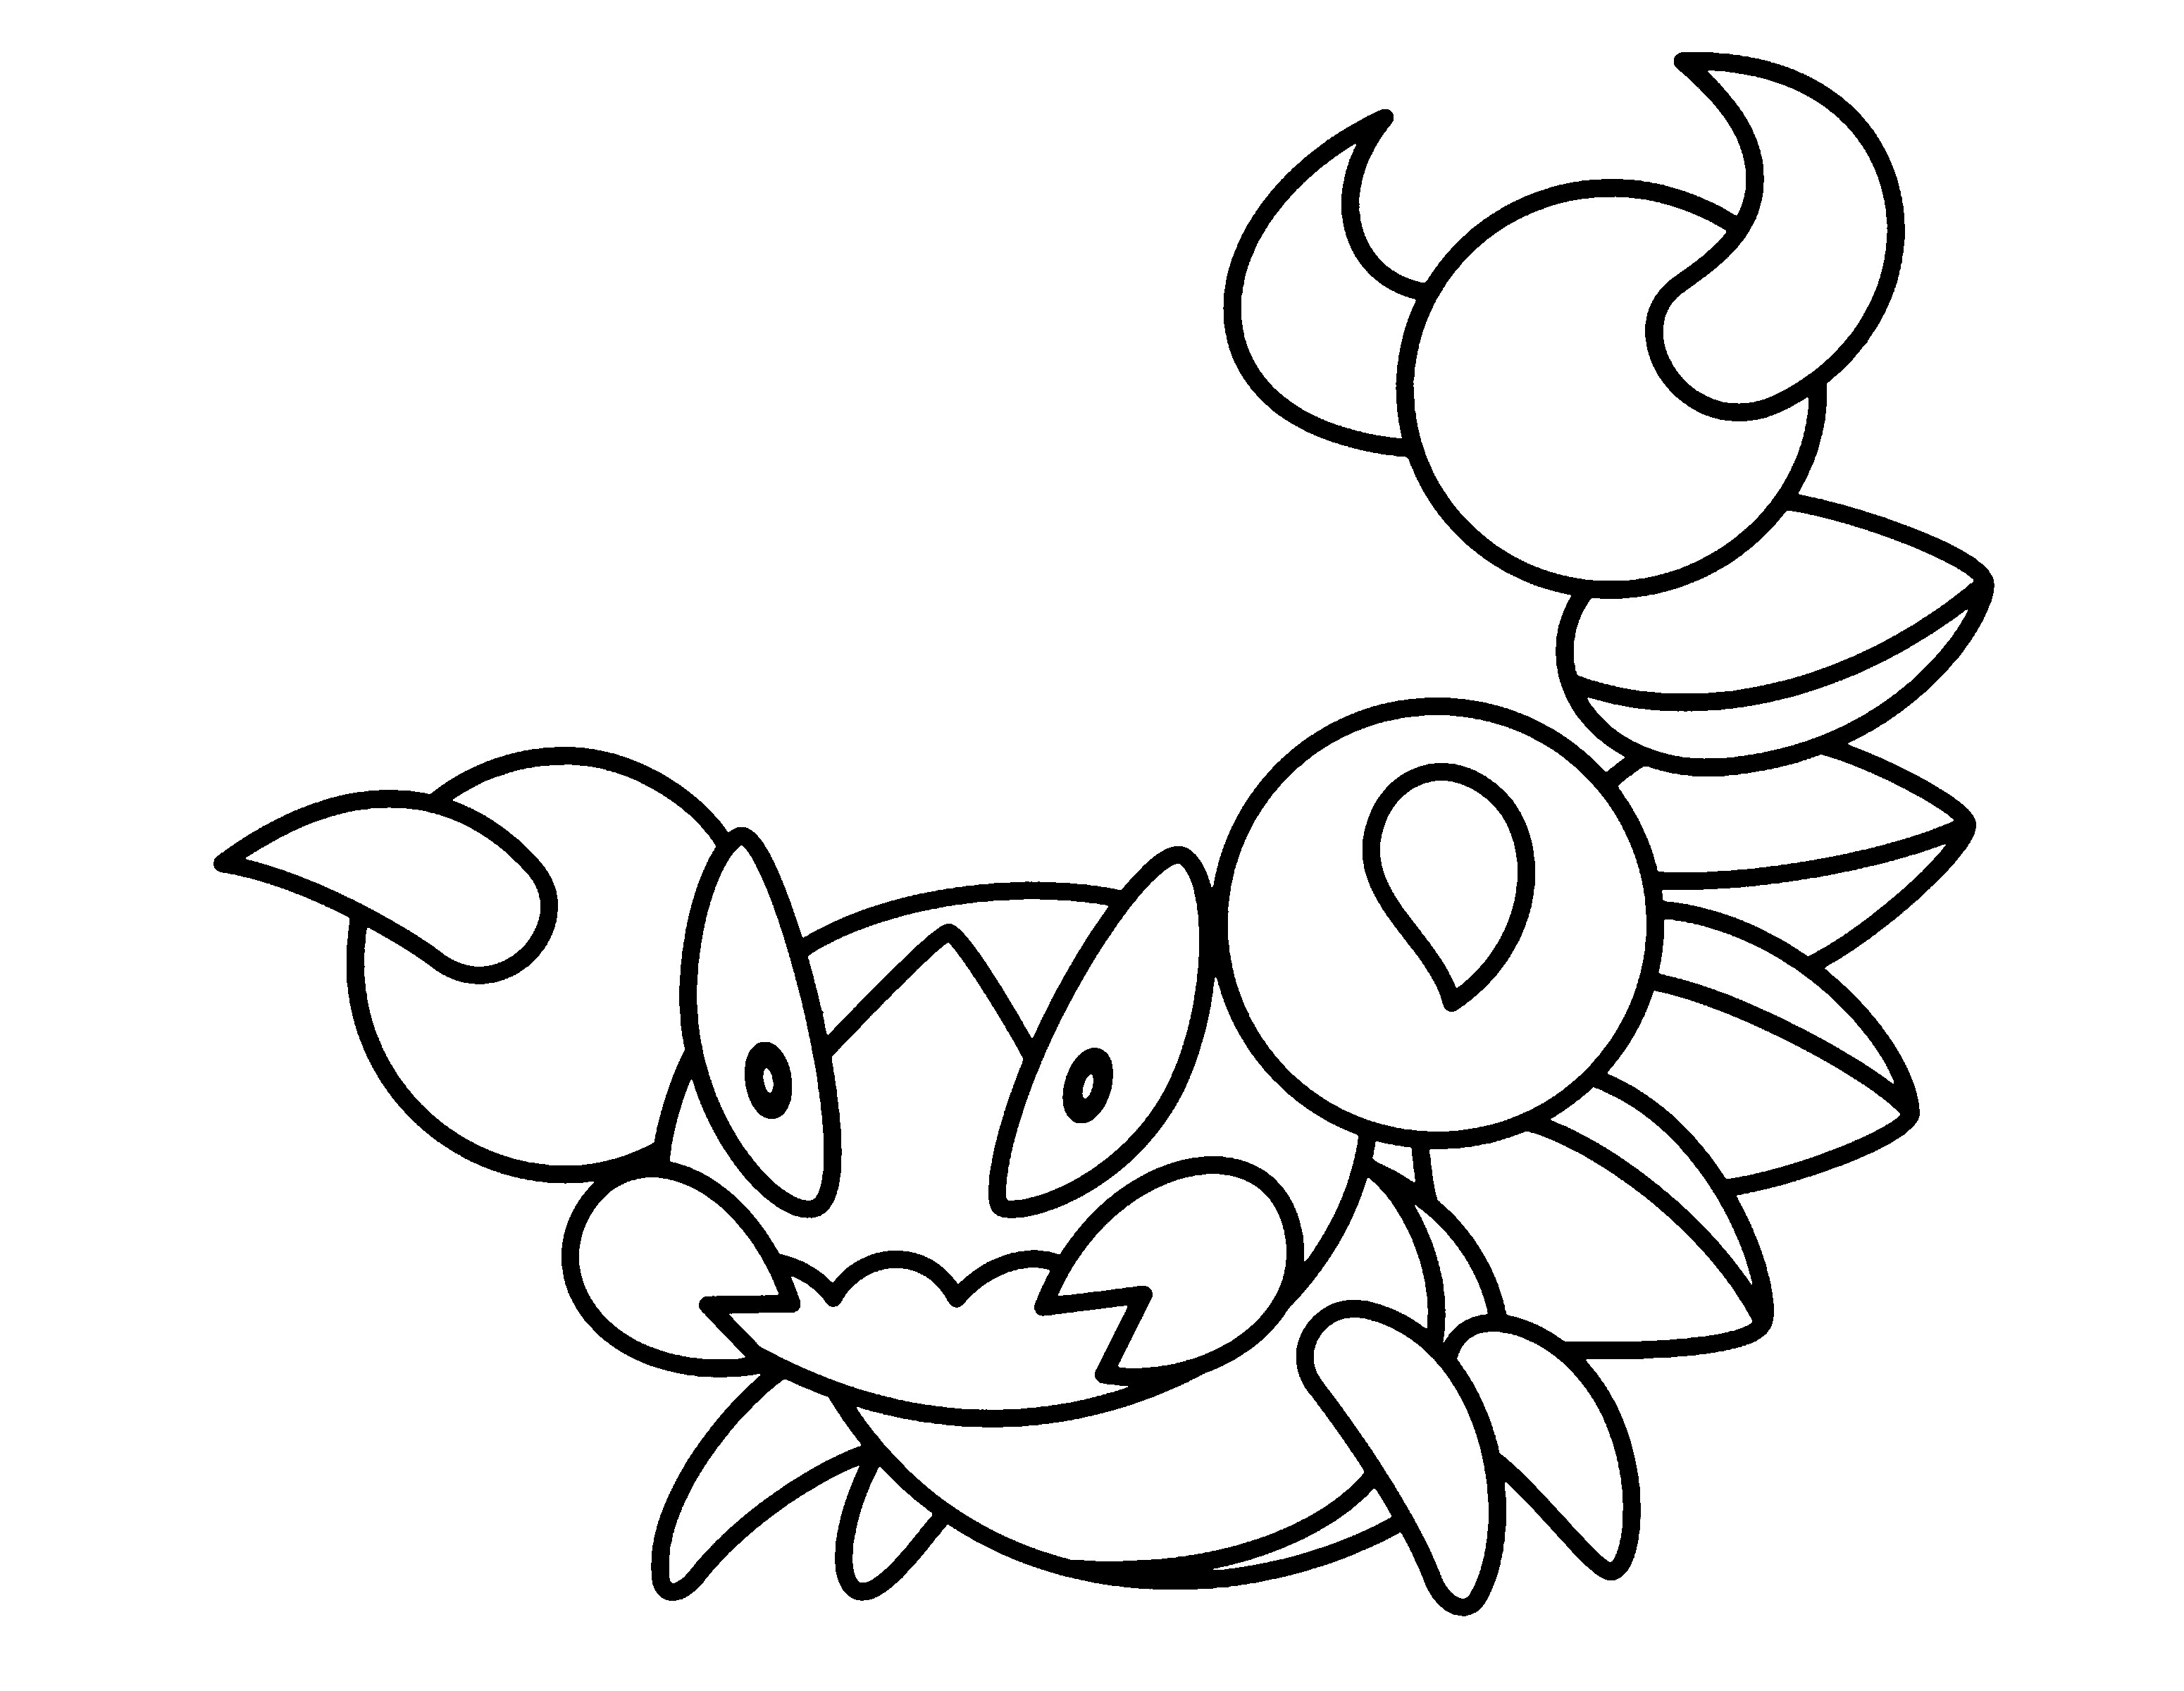 Dragon City Coloring Pages Sketch Coloring Page: Dragon City Coloring Pages Coloring Pages